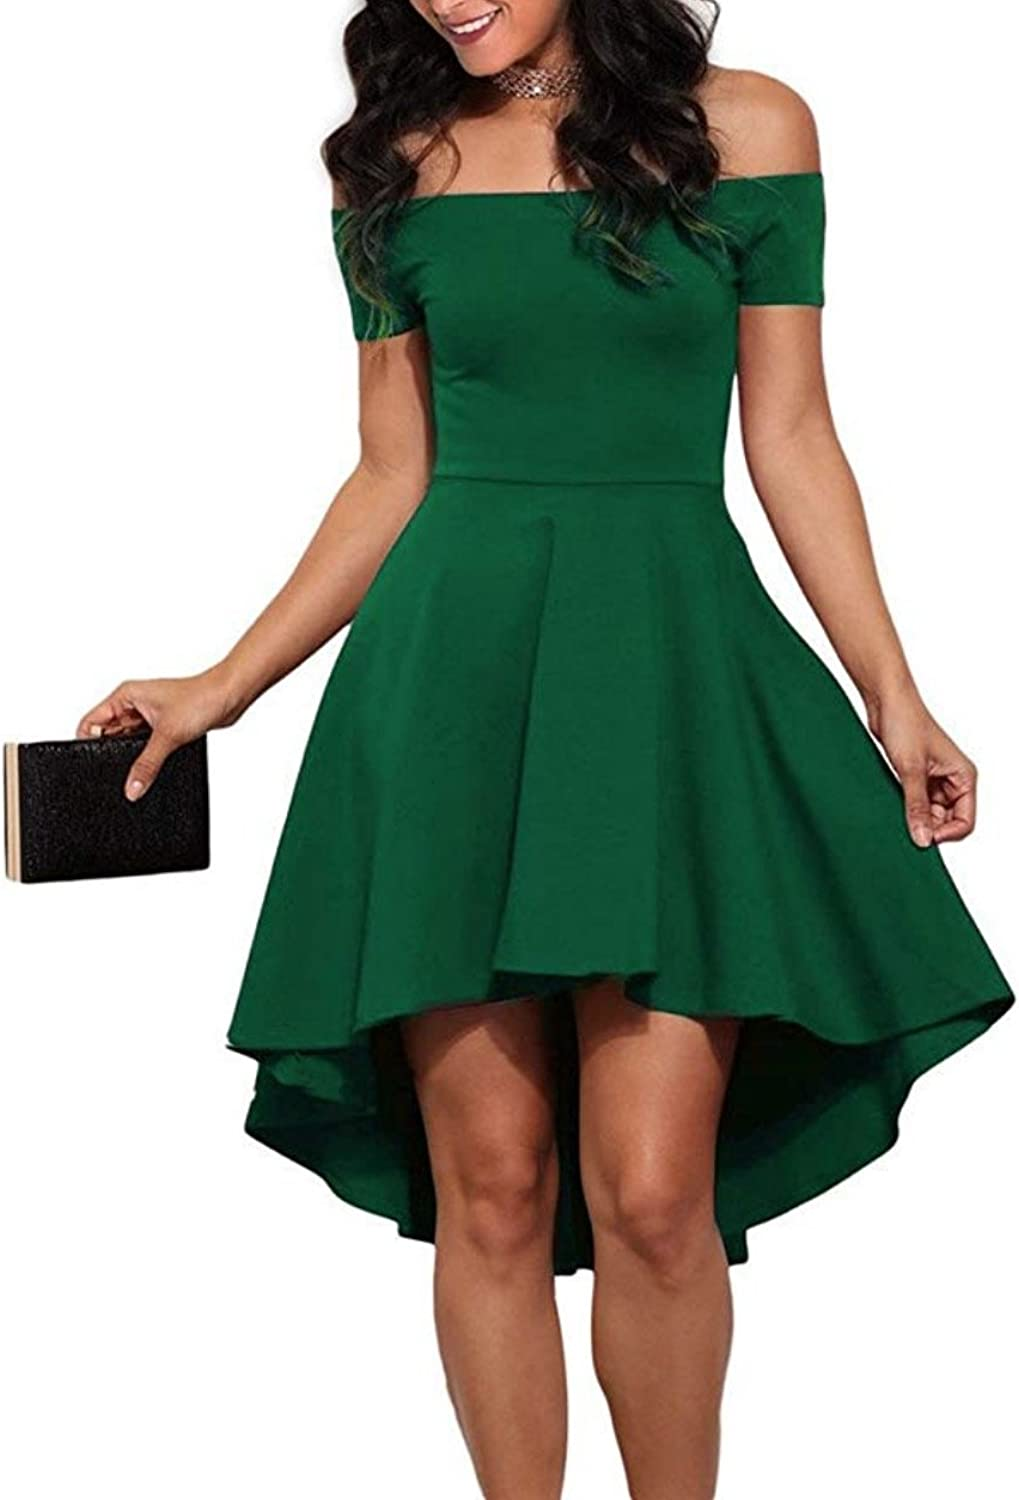 Milan Style Women's Casual Off Shoulder High Low Cocktail Party Dress Short Sleeves